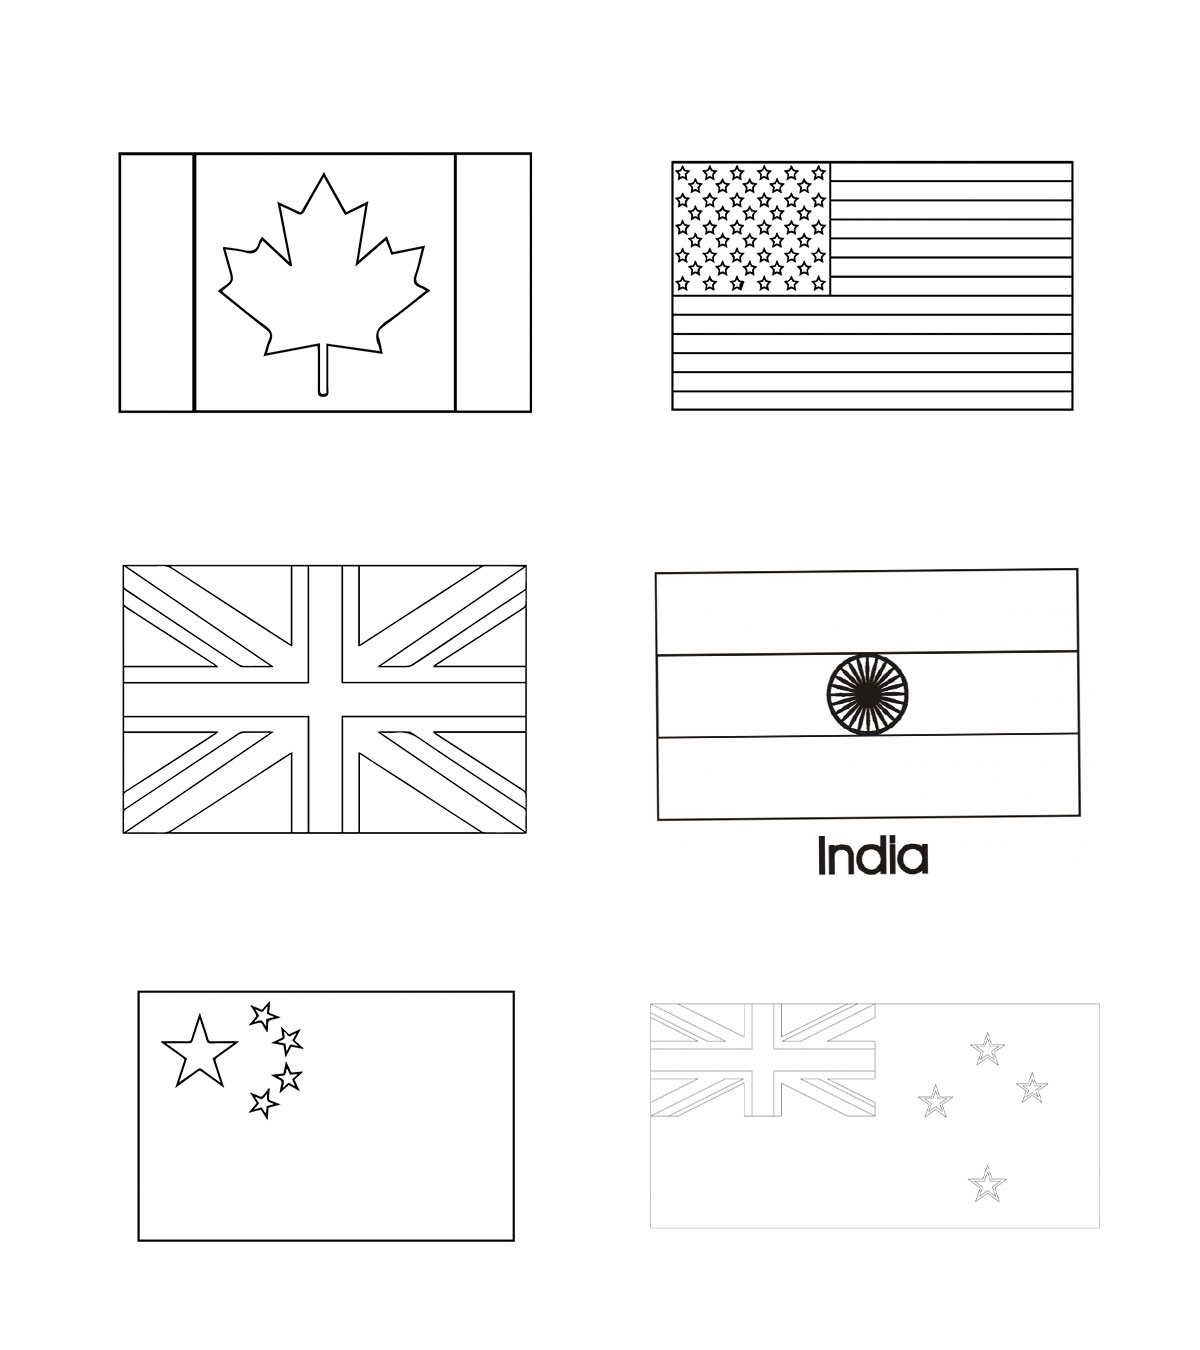 international flags coloring pages flags of the world colouring sheets sb4440 sparklebox coloring international flags pages